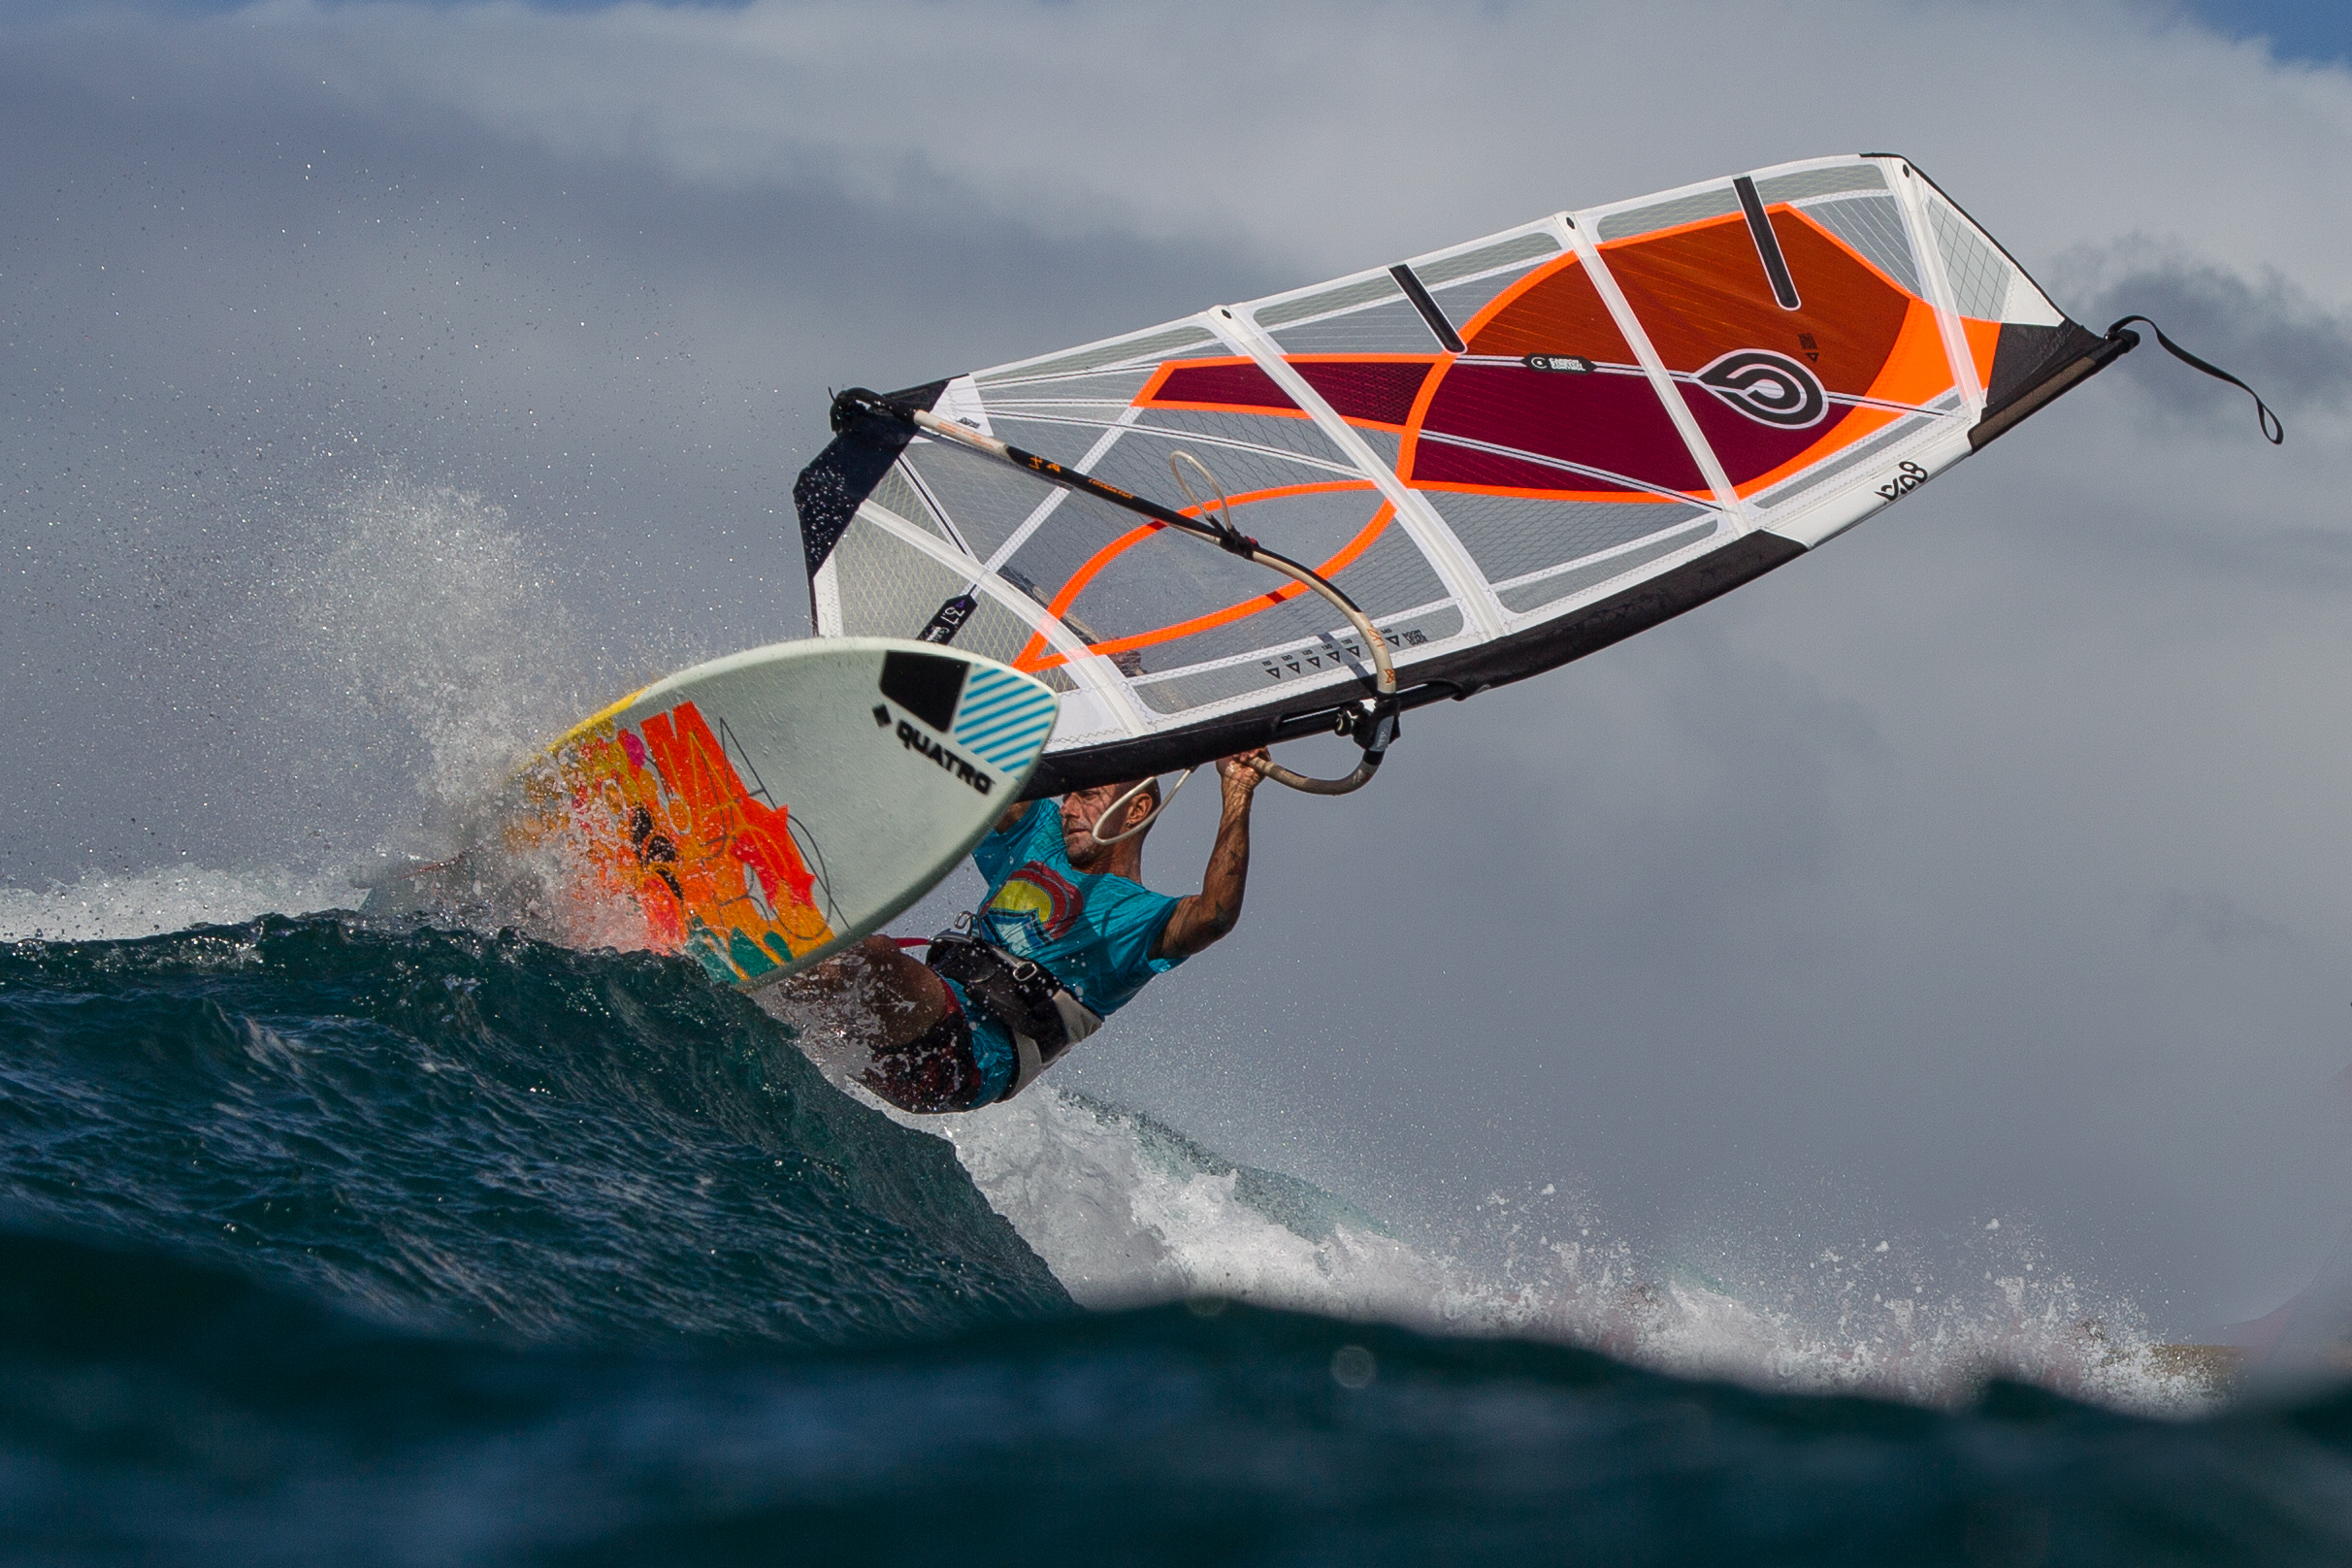 The Latest 2014 Windsurf Sails From Goya Windsurfing